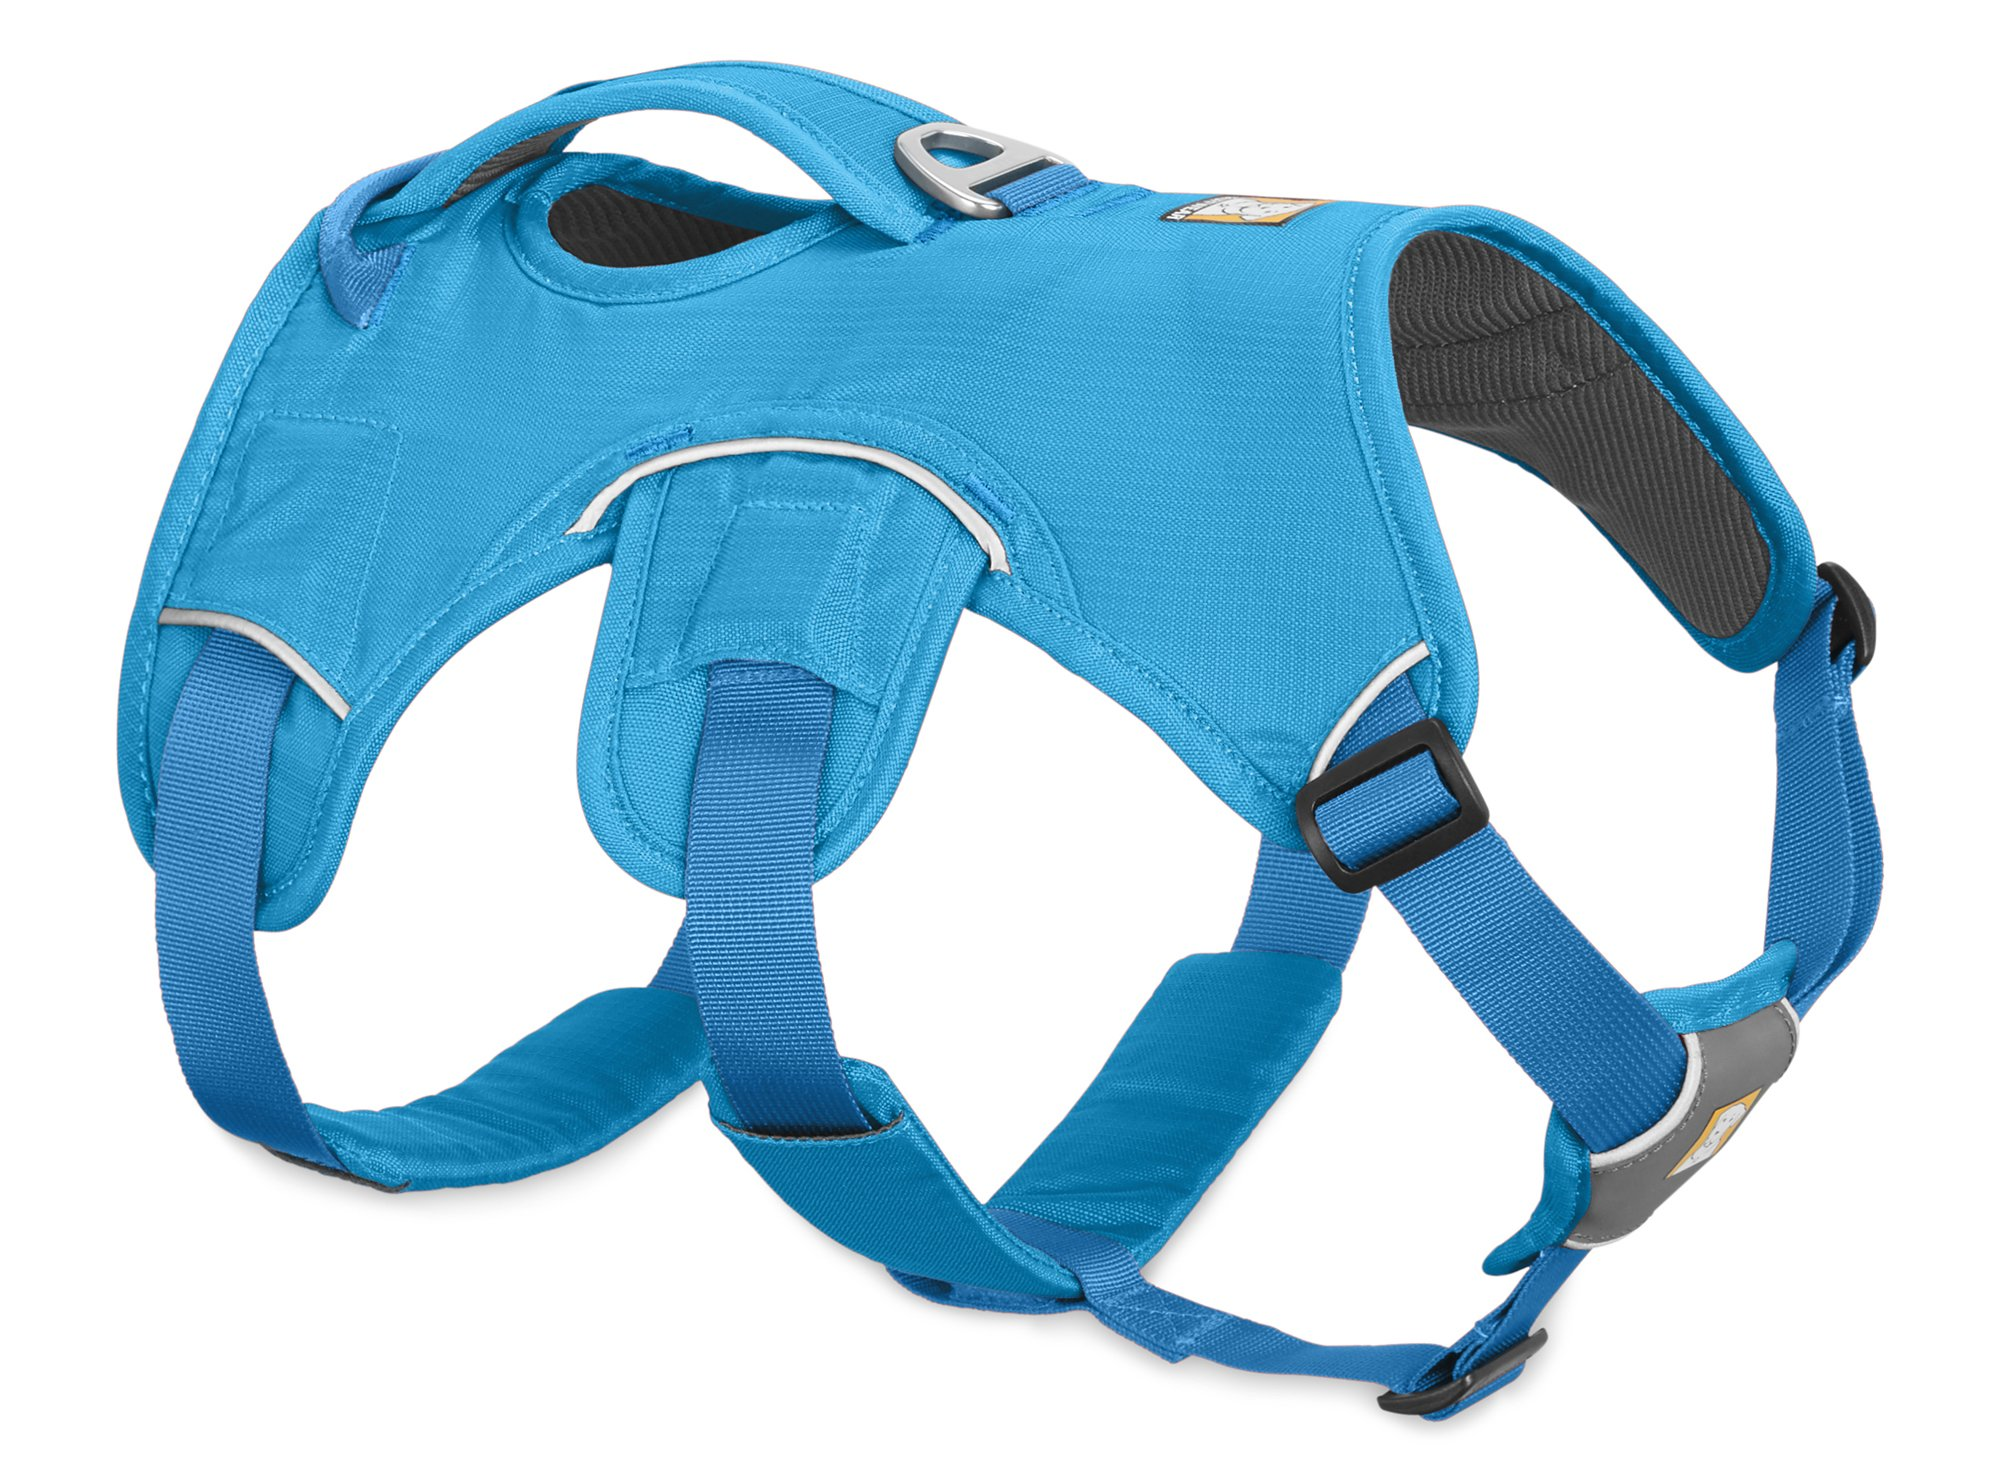 RUFFFWEAR Web Master Dog Harness with Lift Handle, Blue Dusk, Medium